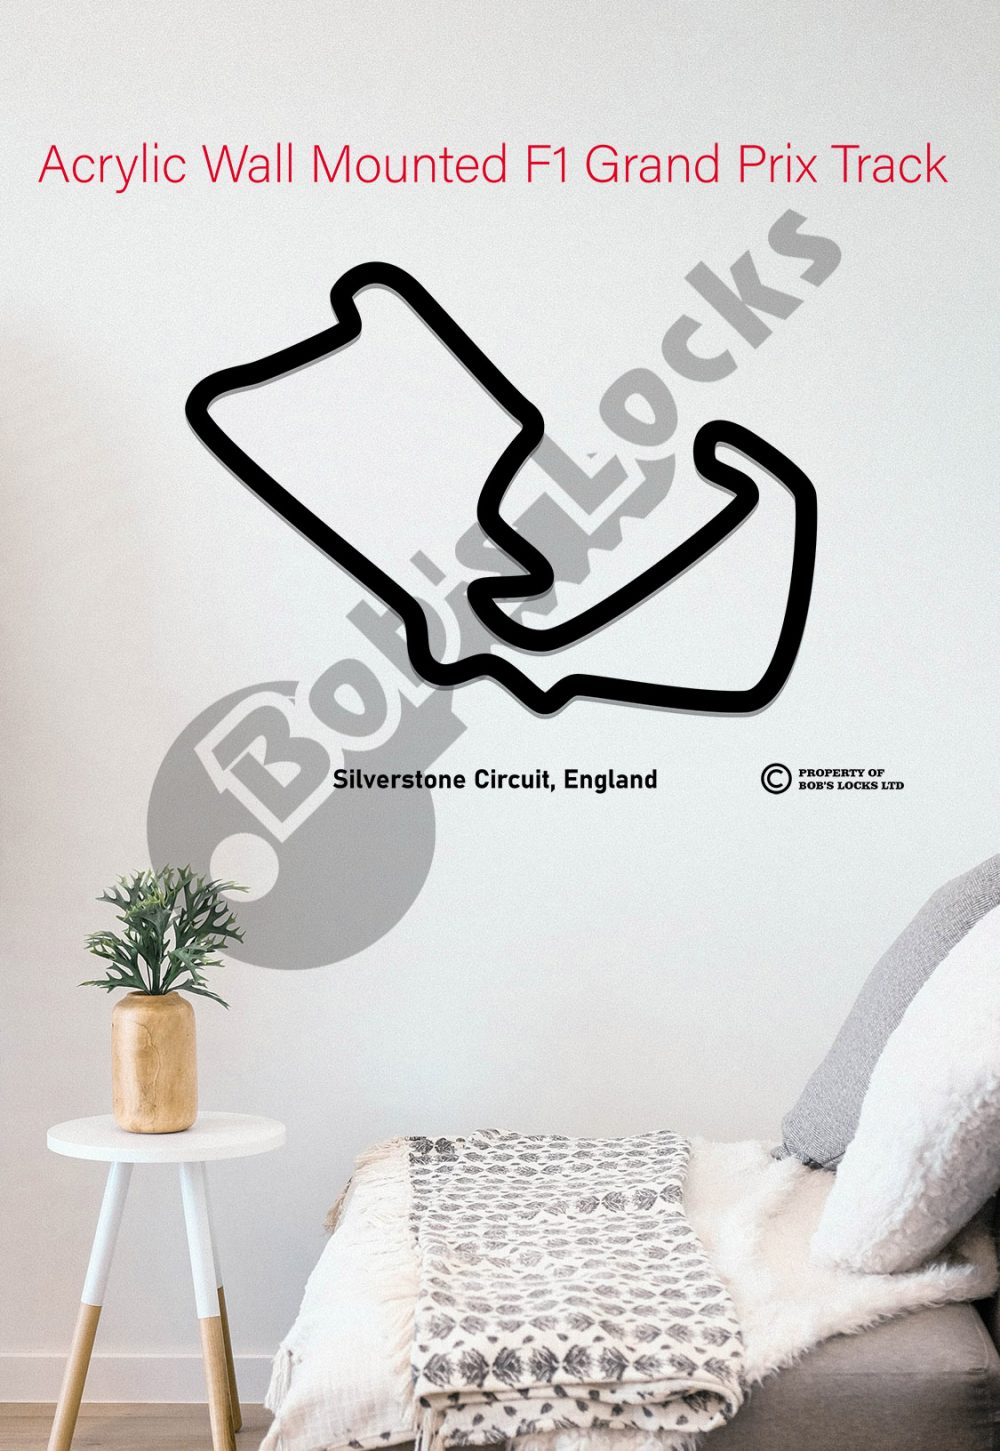 Image of Acrylic F1 Silverstone Circuit